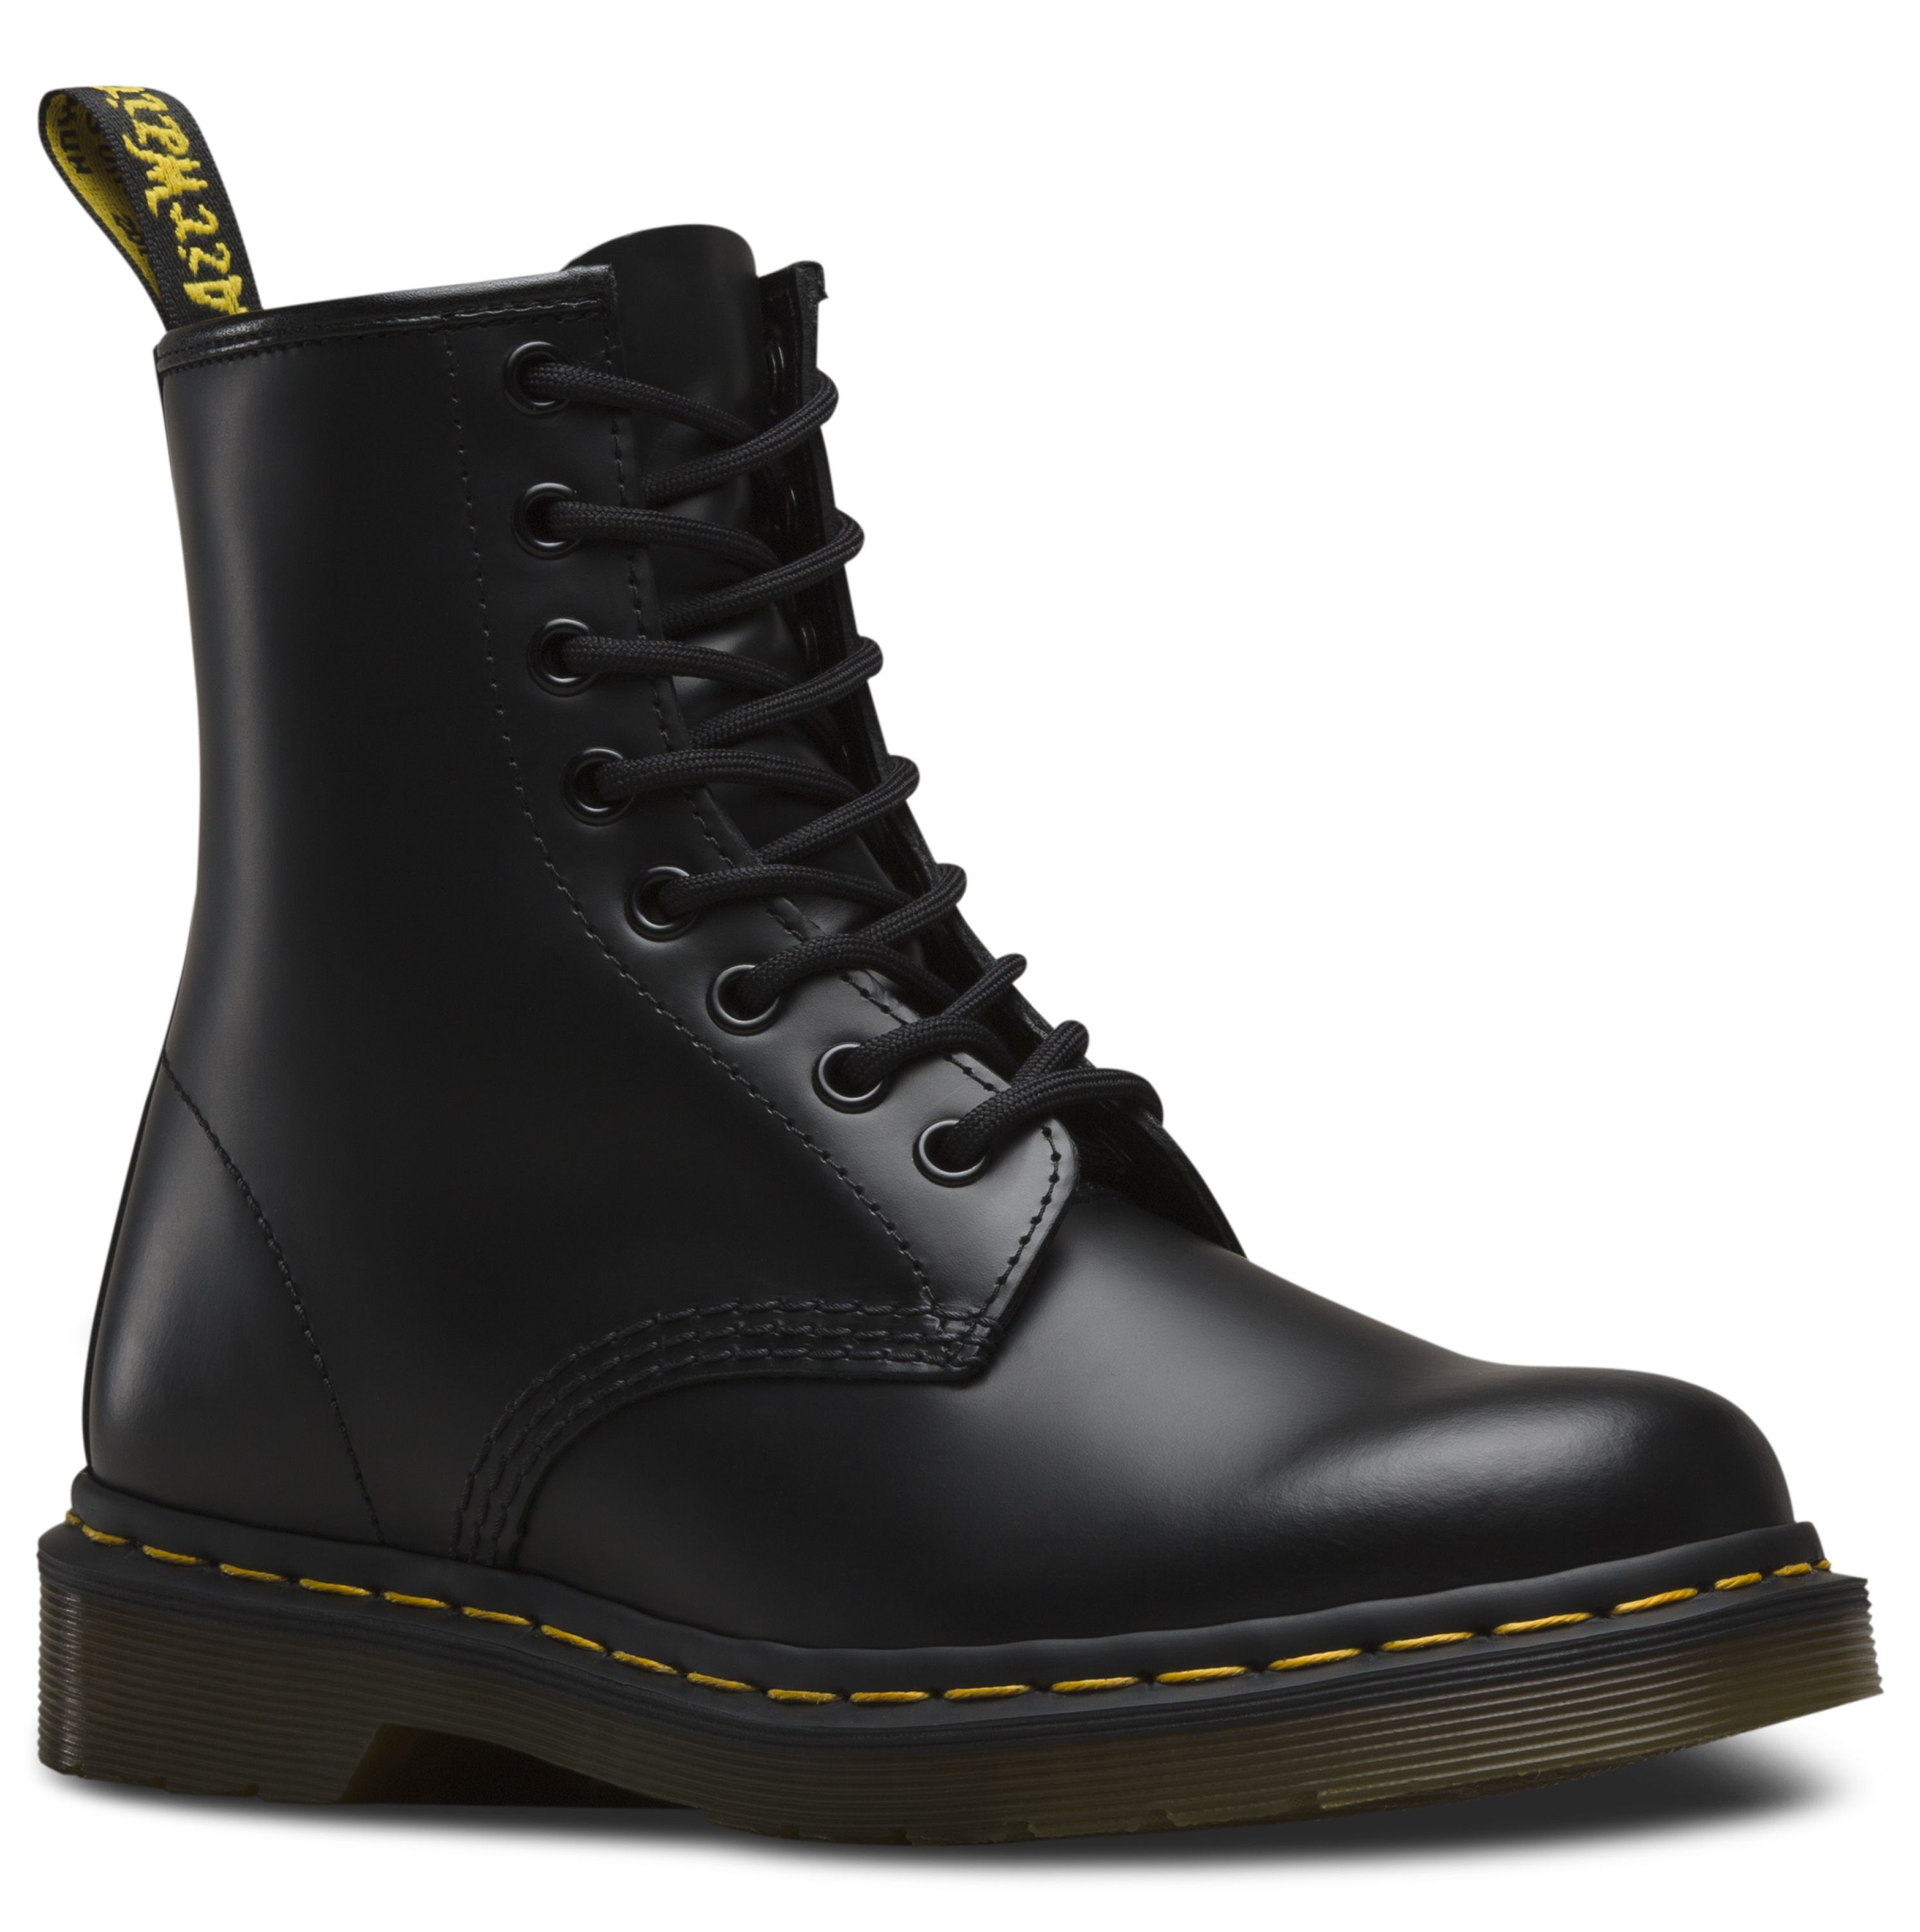 1460 SMOOTH | Men's Boots & Shoes | Official Dr Martens Store - US